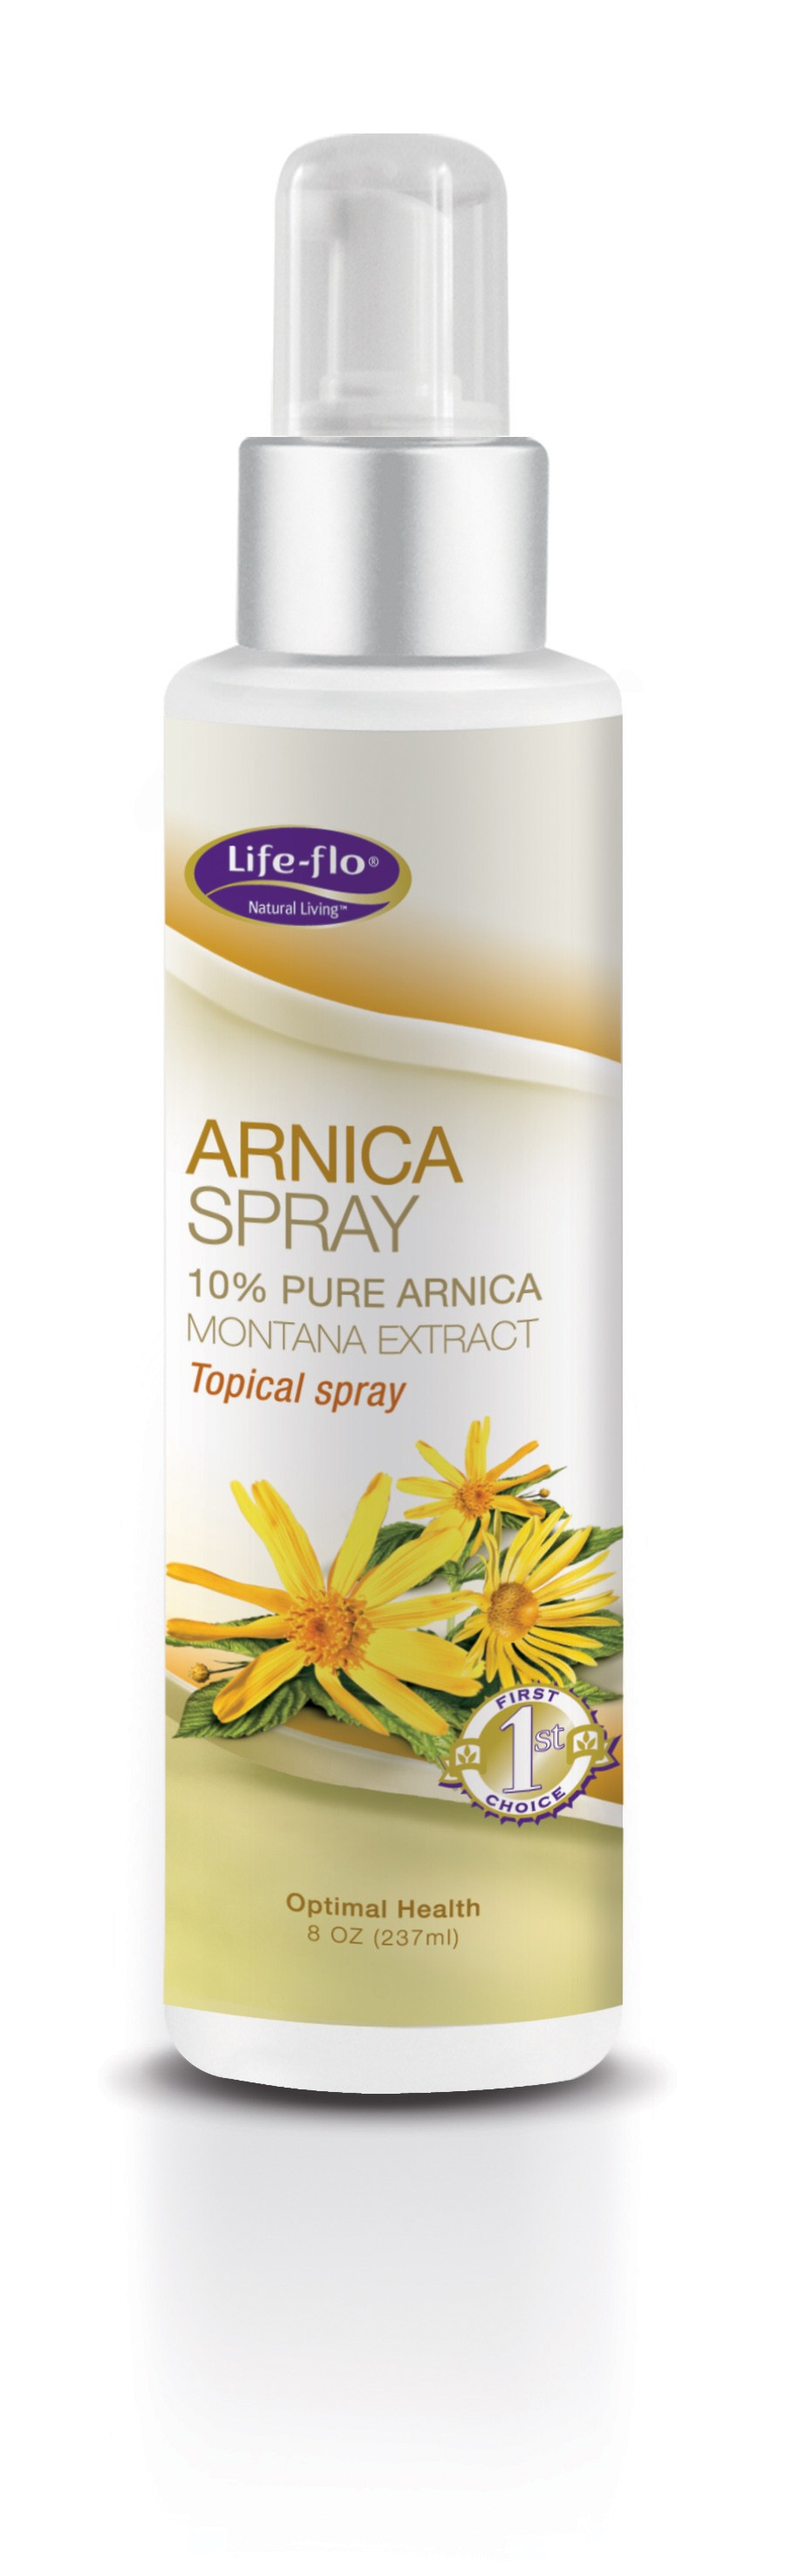 Life-Flo Arnica Montana Extract Topical Spray 8 oz